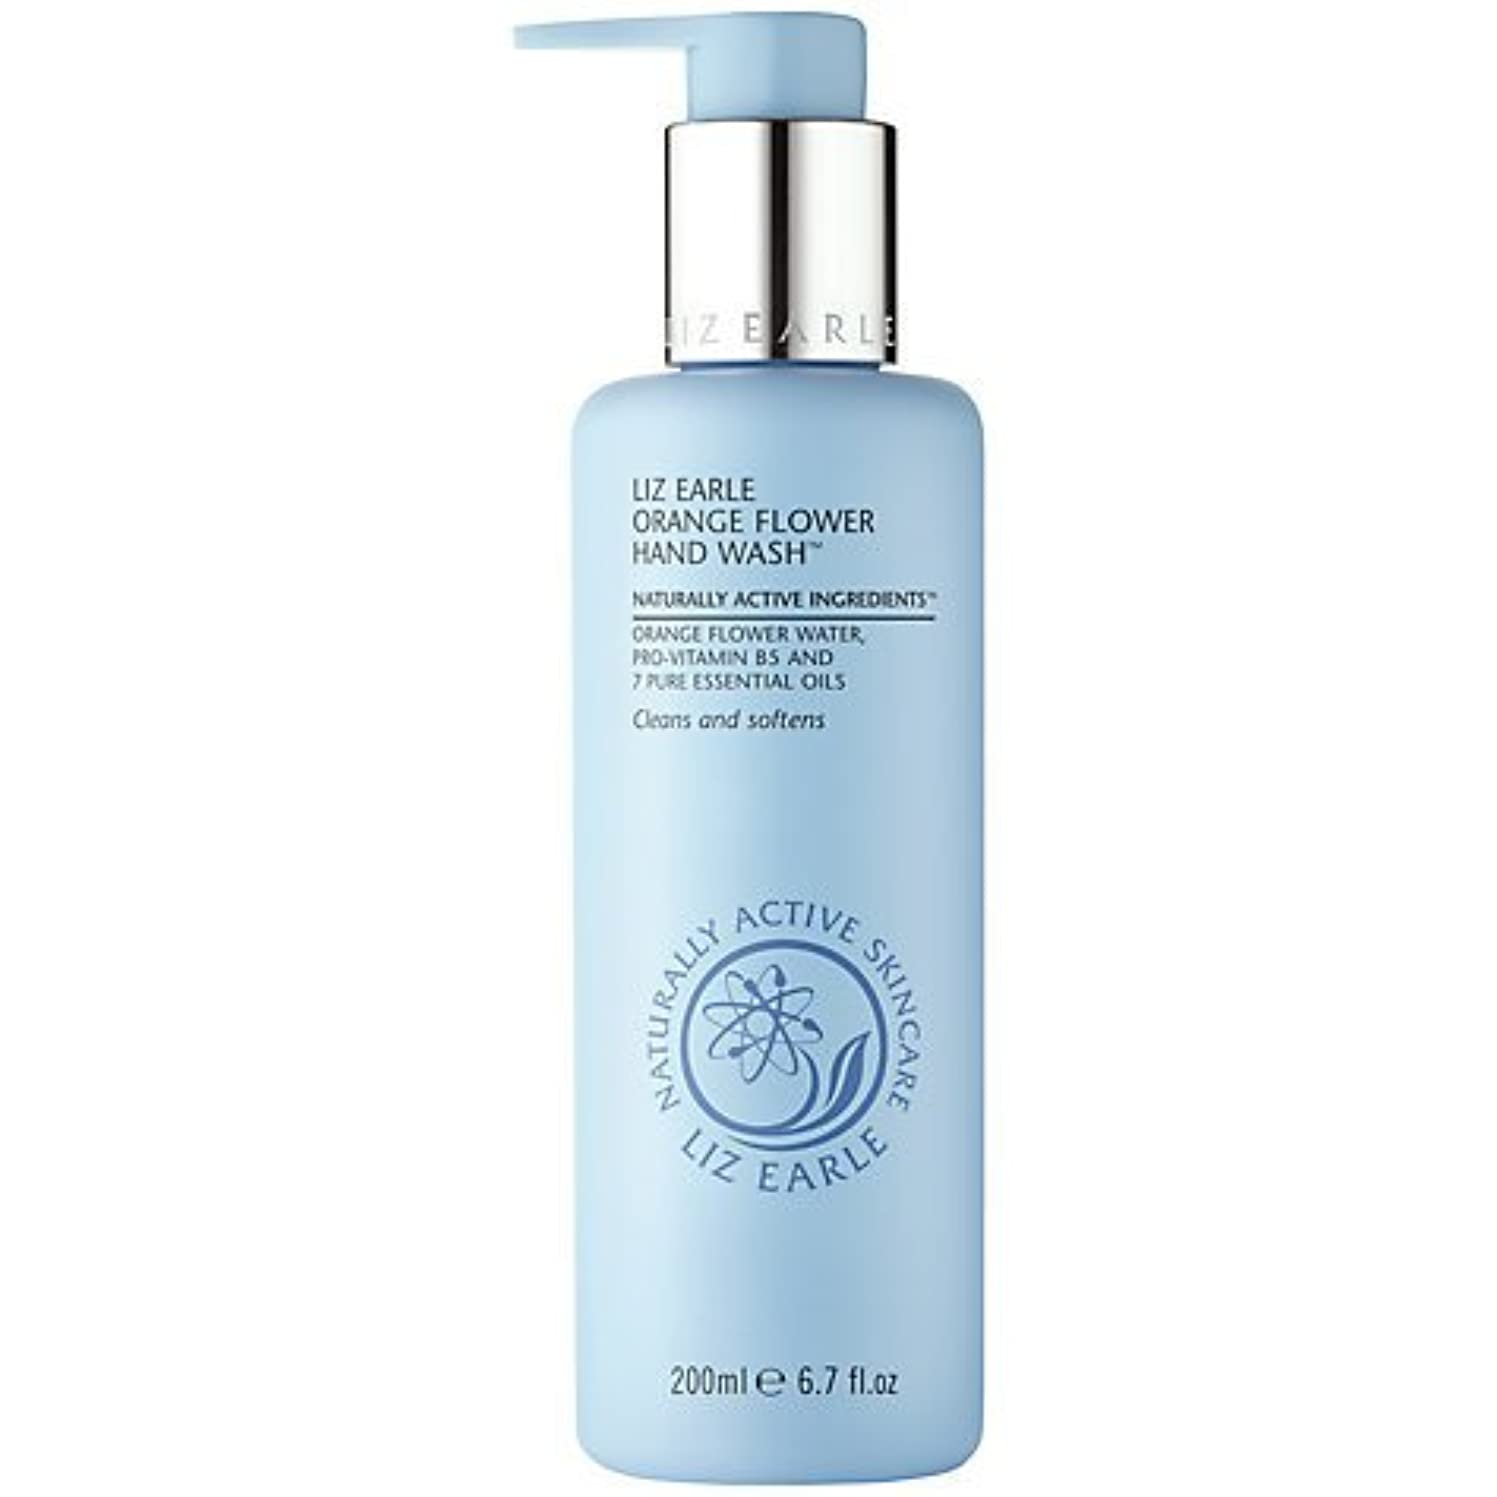 Liz Earle Orange Flower Hand Wash 200ml by Liz Earle [並行輸入品]